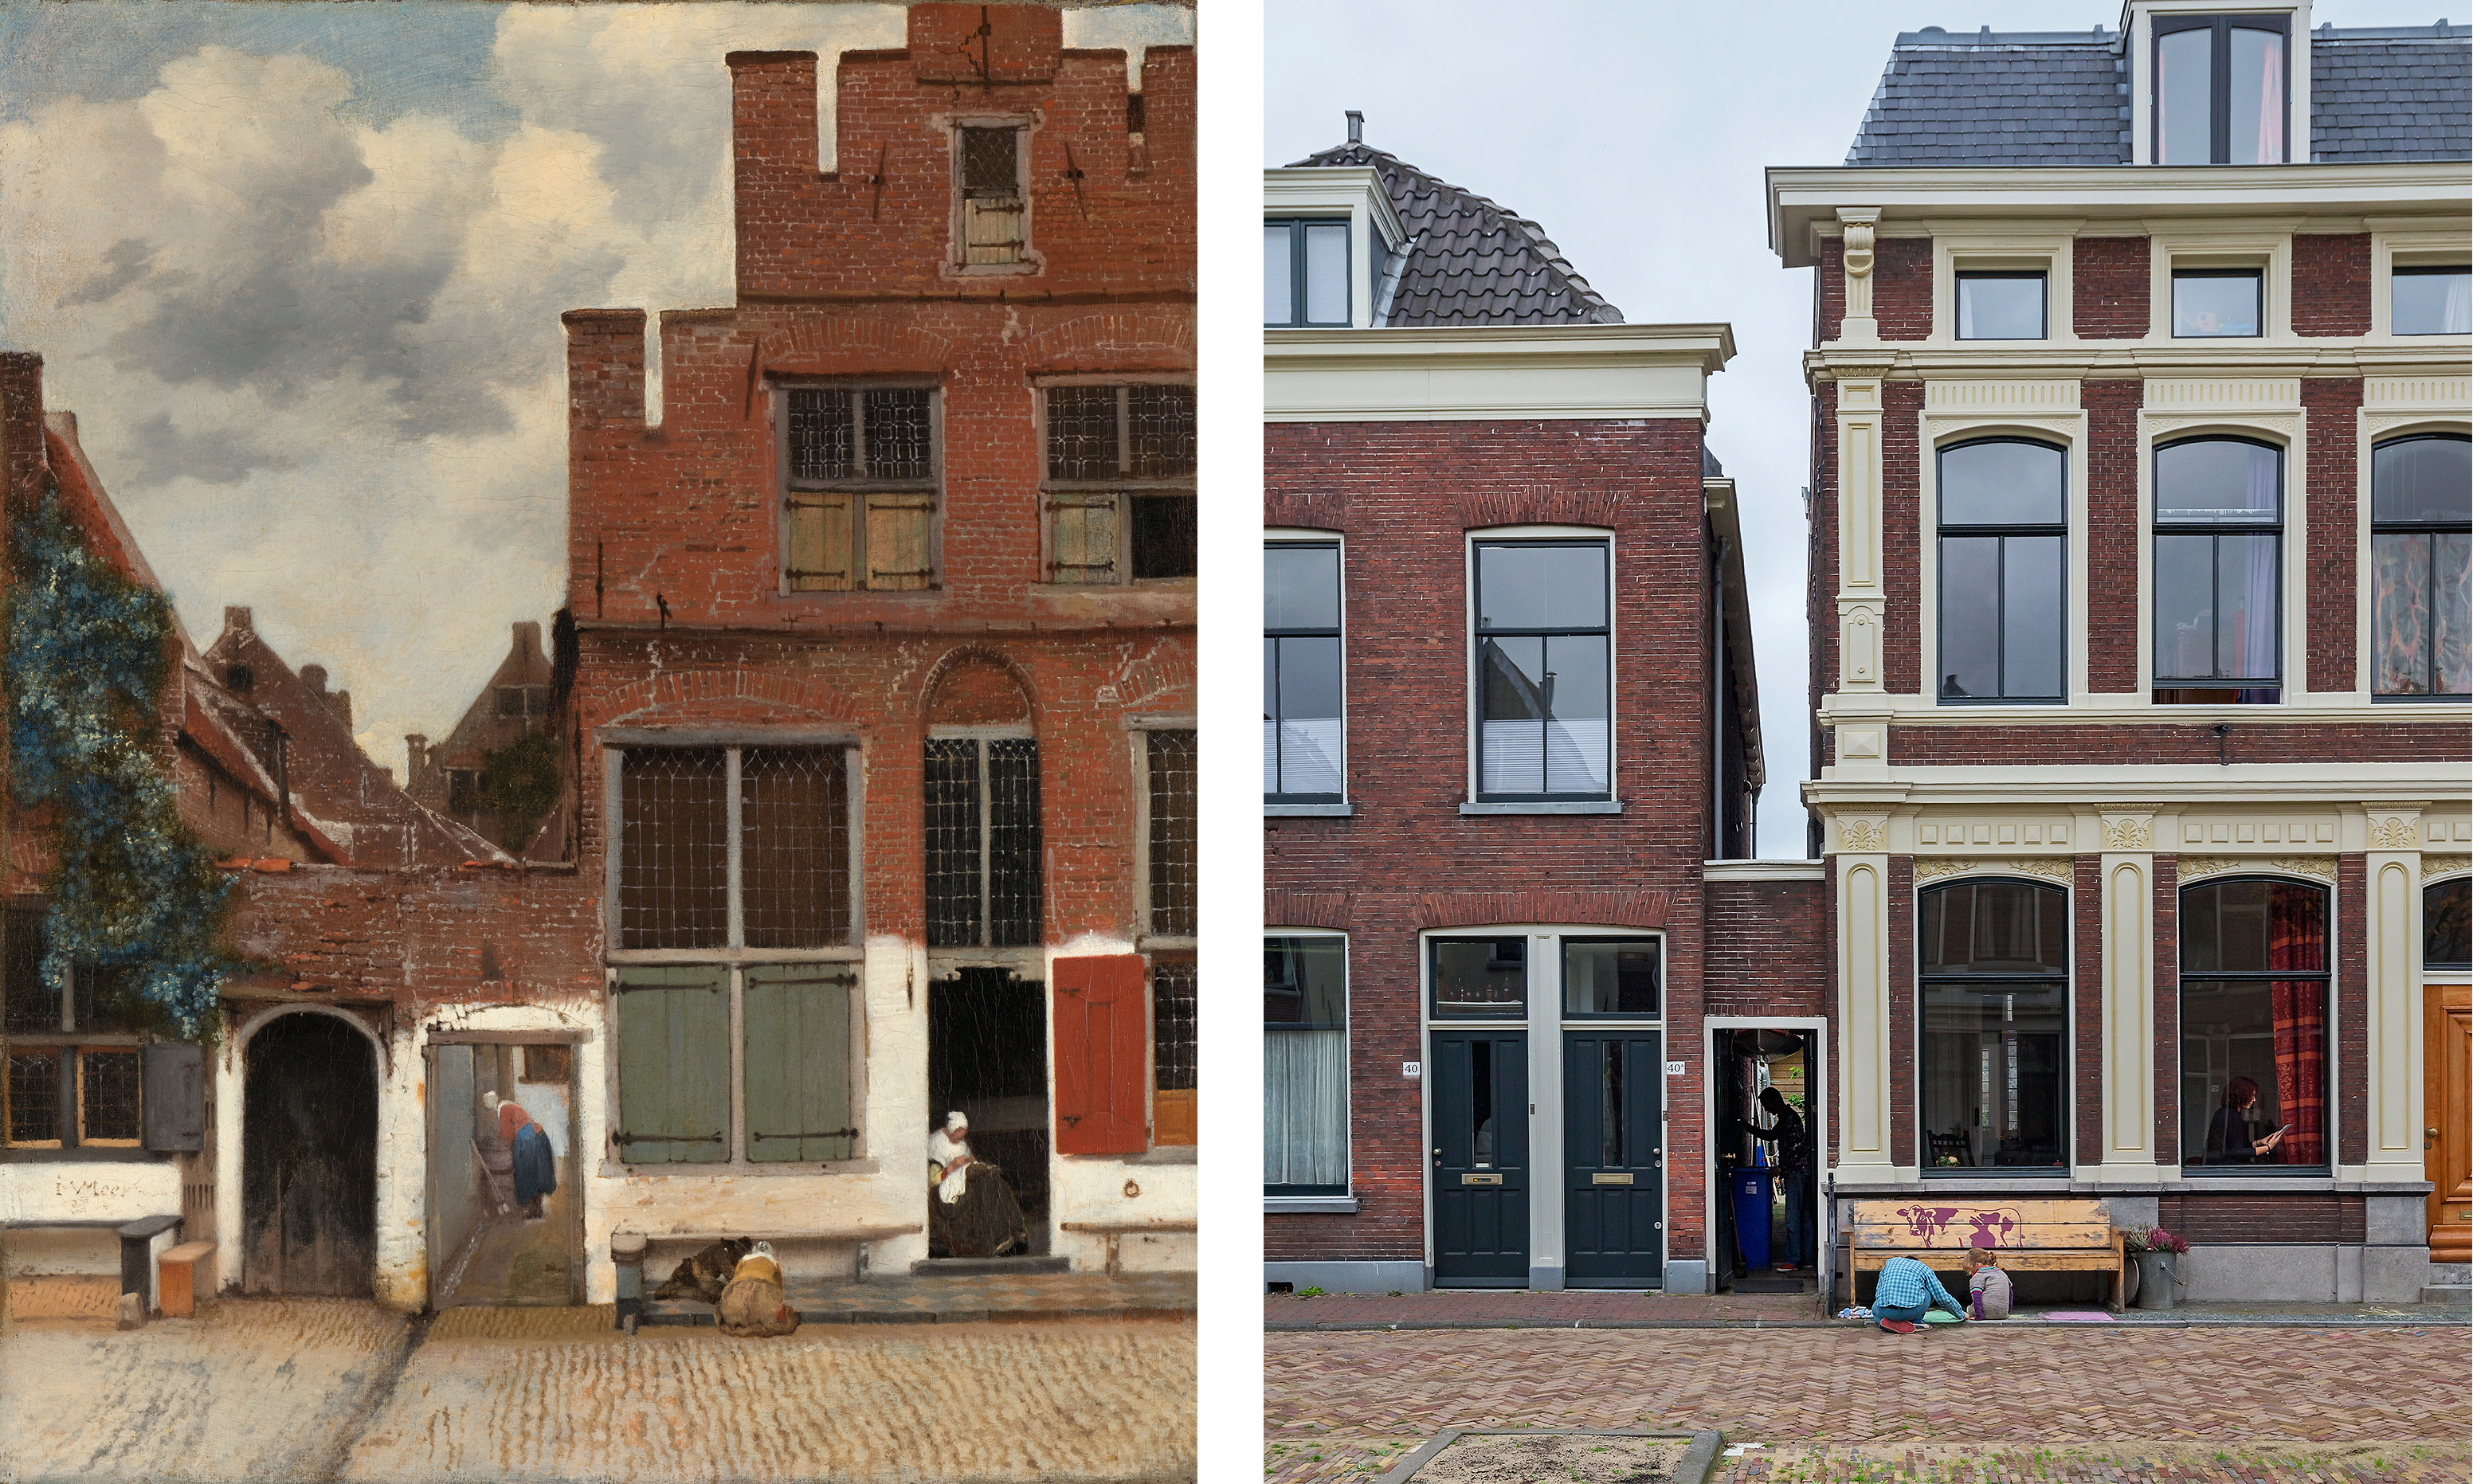 The Little Street now and then. Image courtesy the Rijksmuseum.